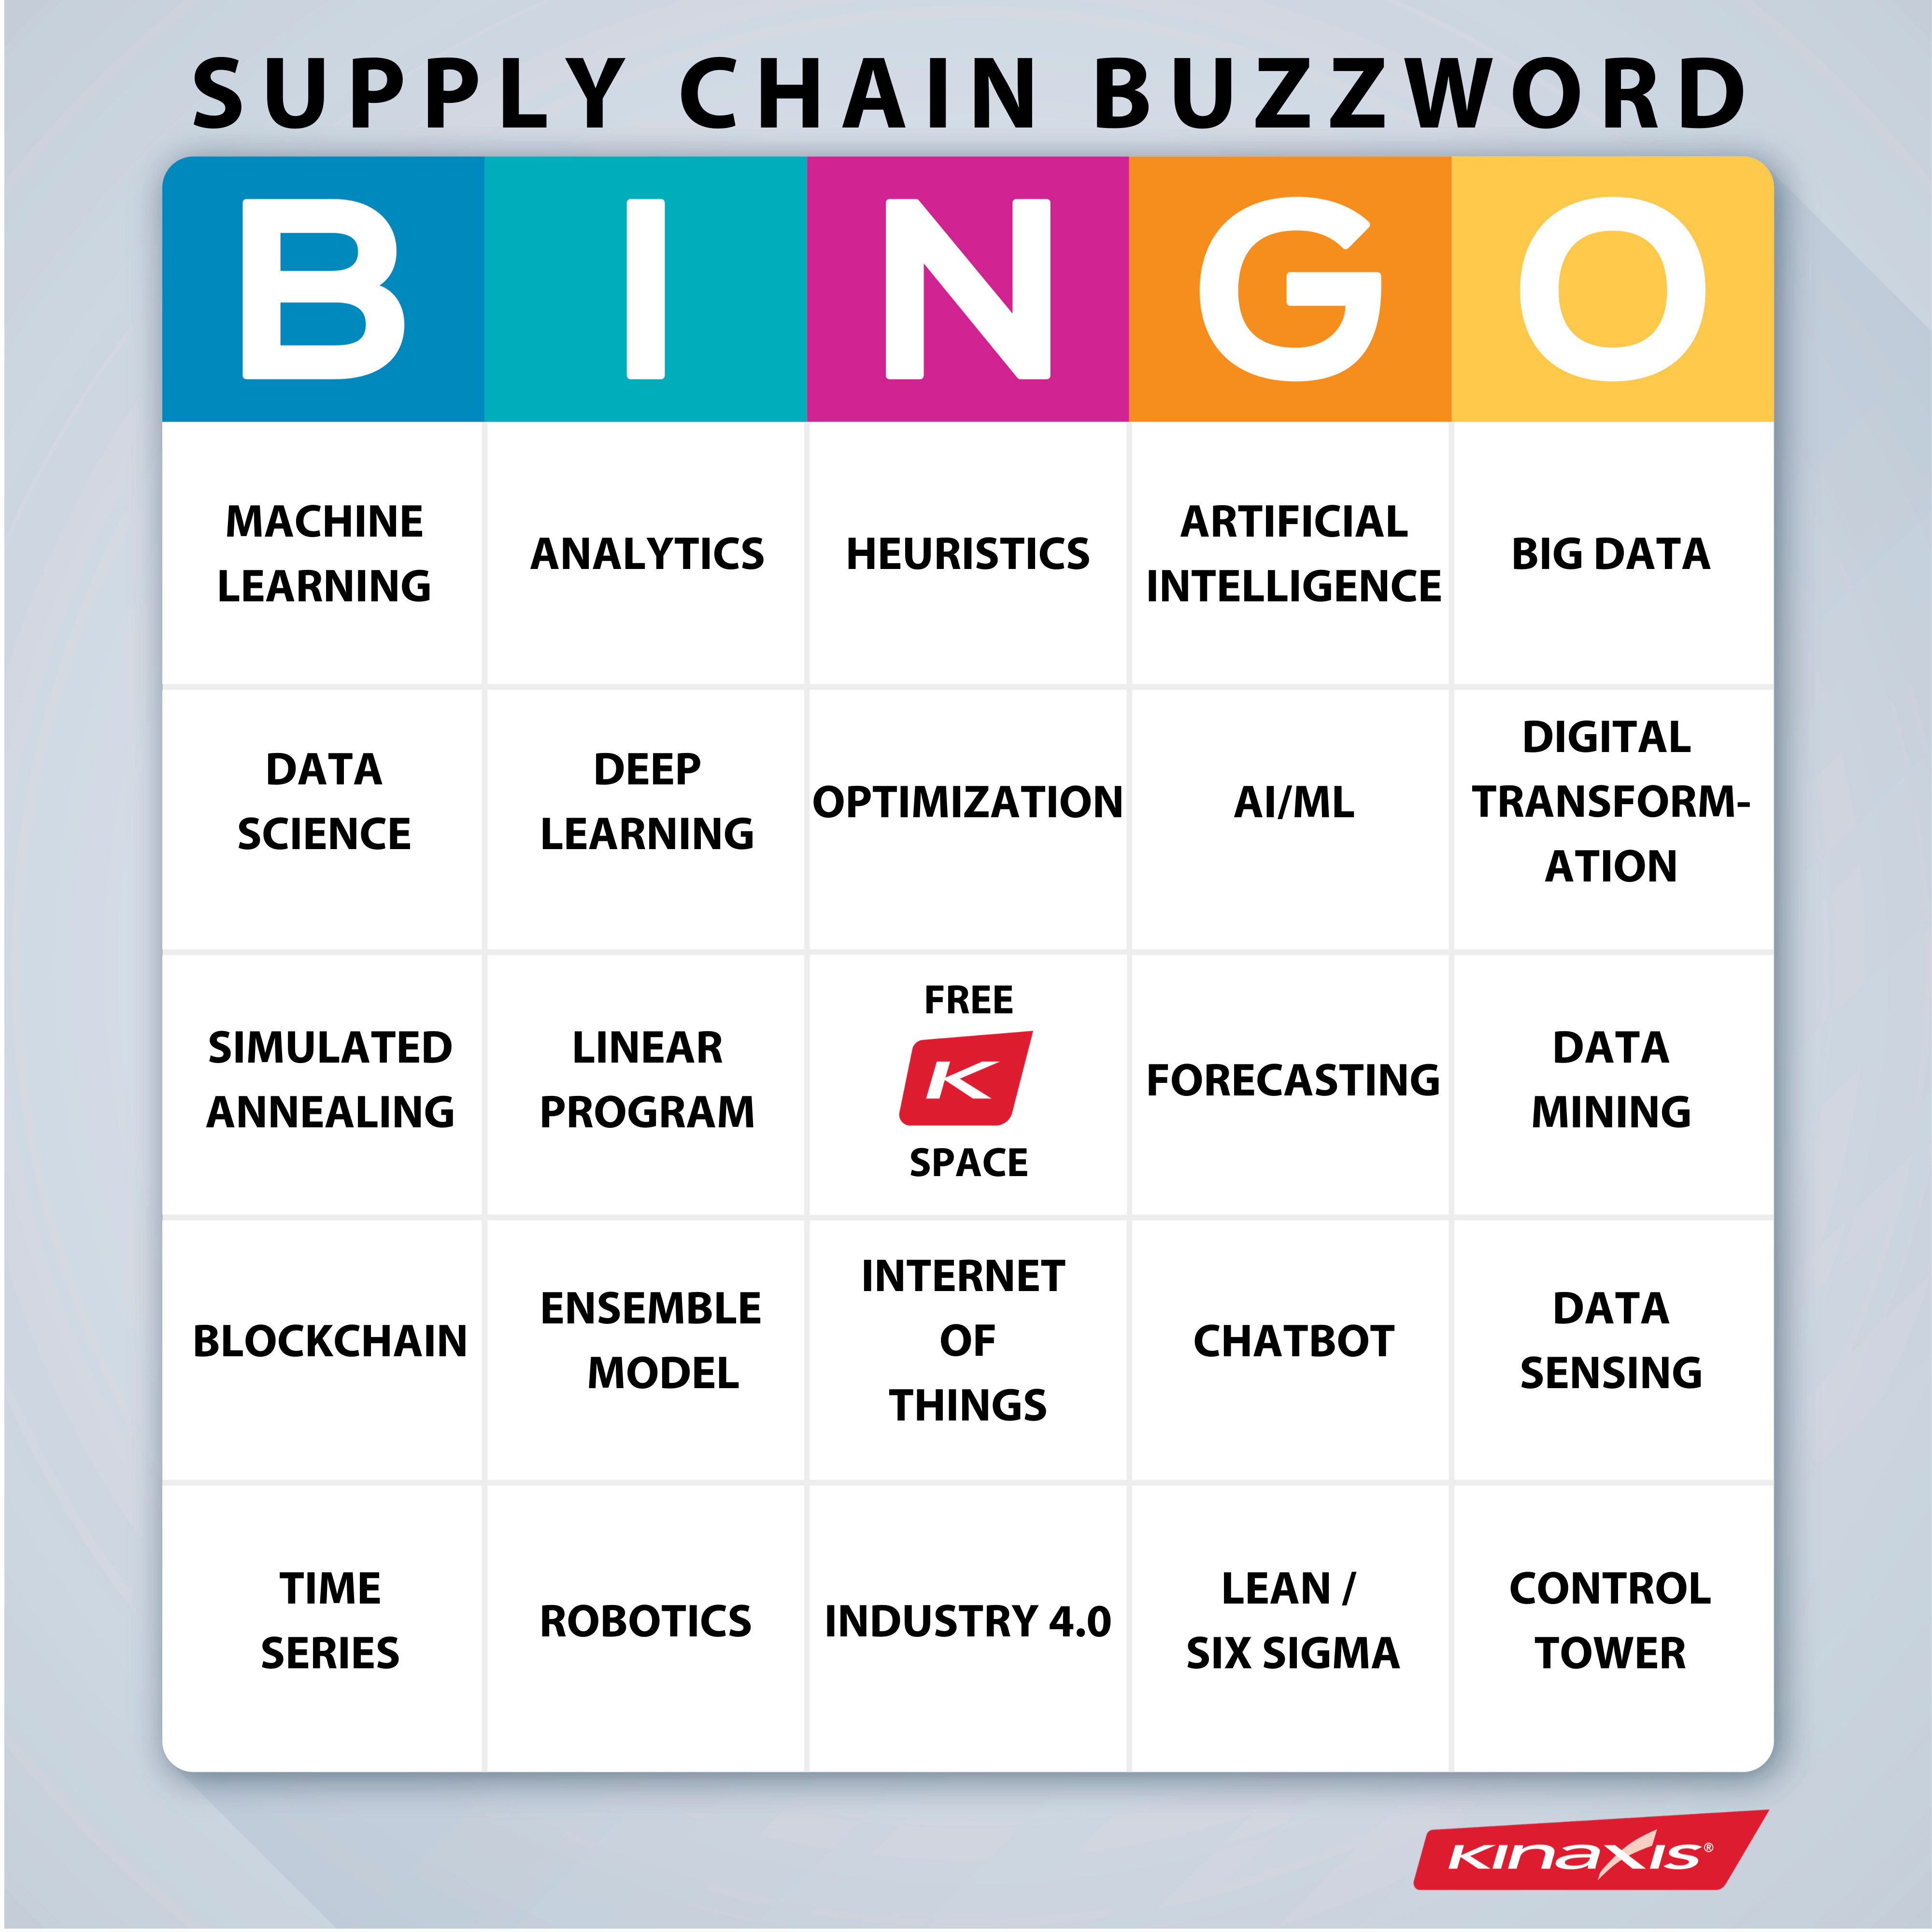 Winning at buzzword bingo (even when the board keeps changing)